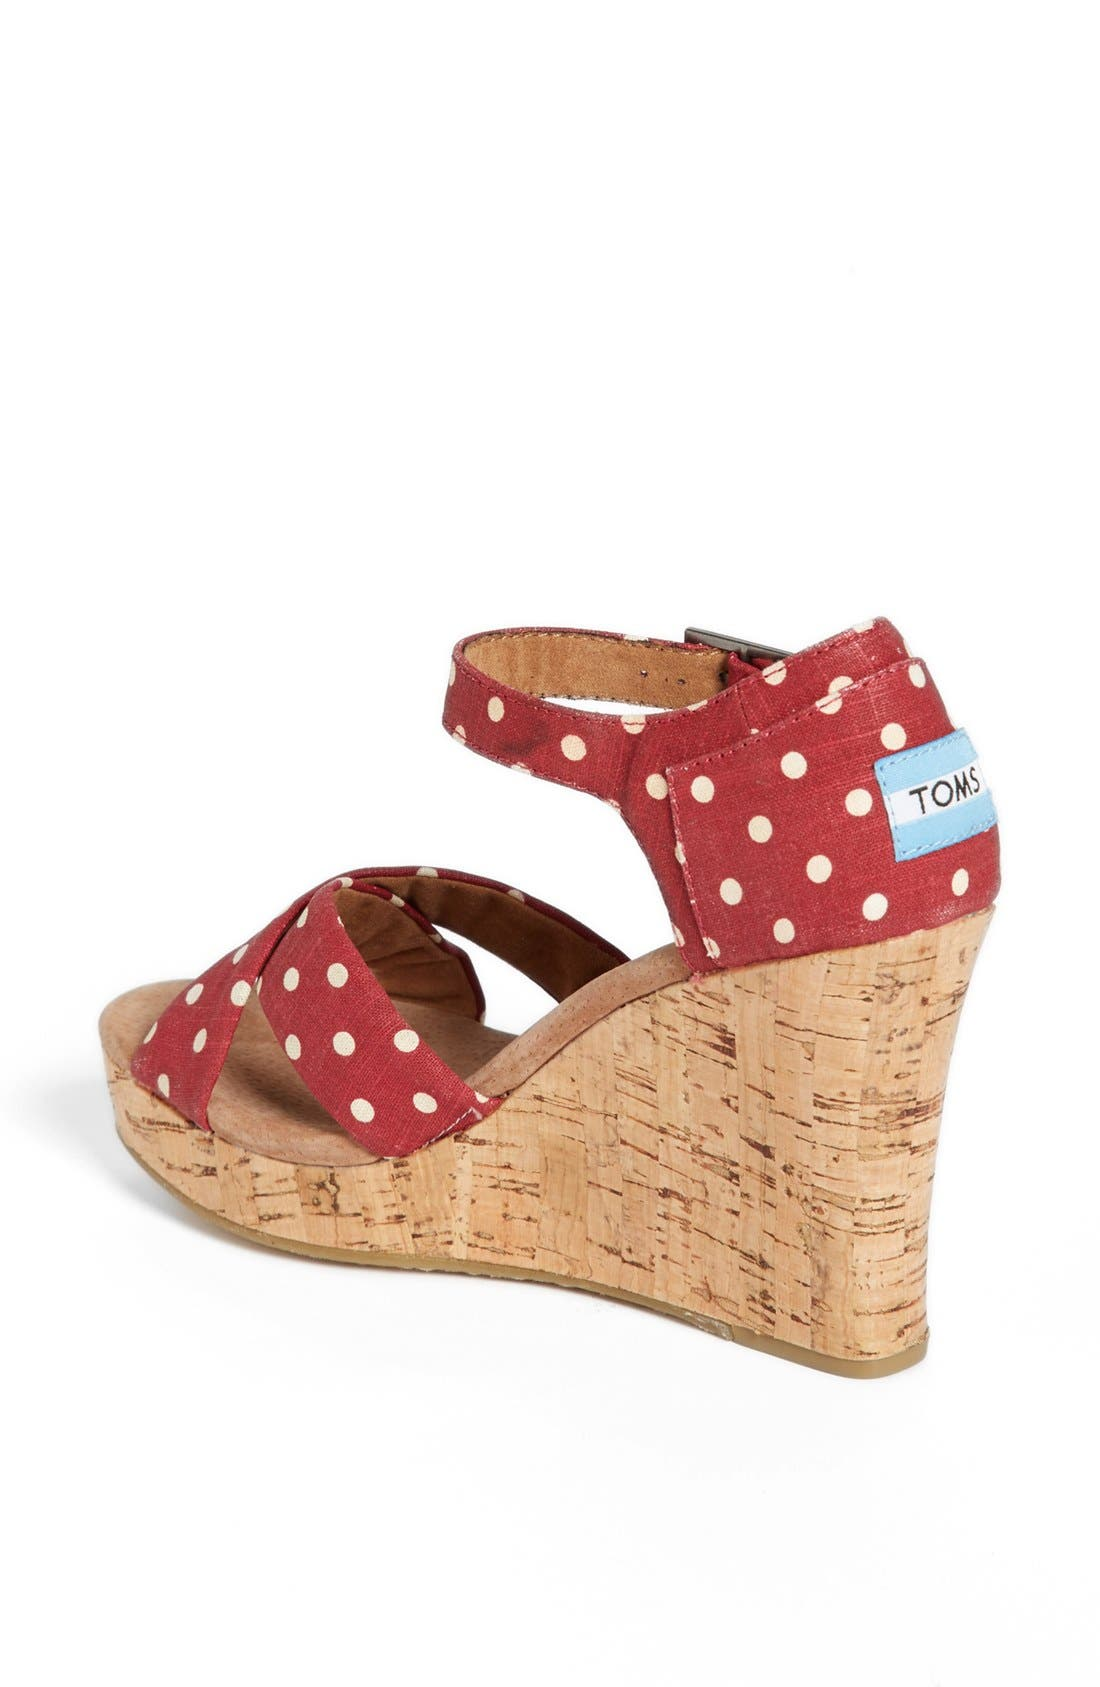 Alternate Image 2  - TOMS Polka Dot Linen Woven Wedge Sandal